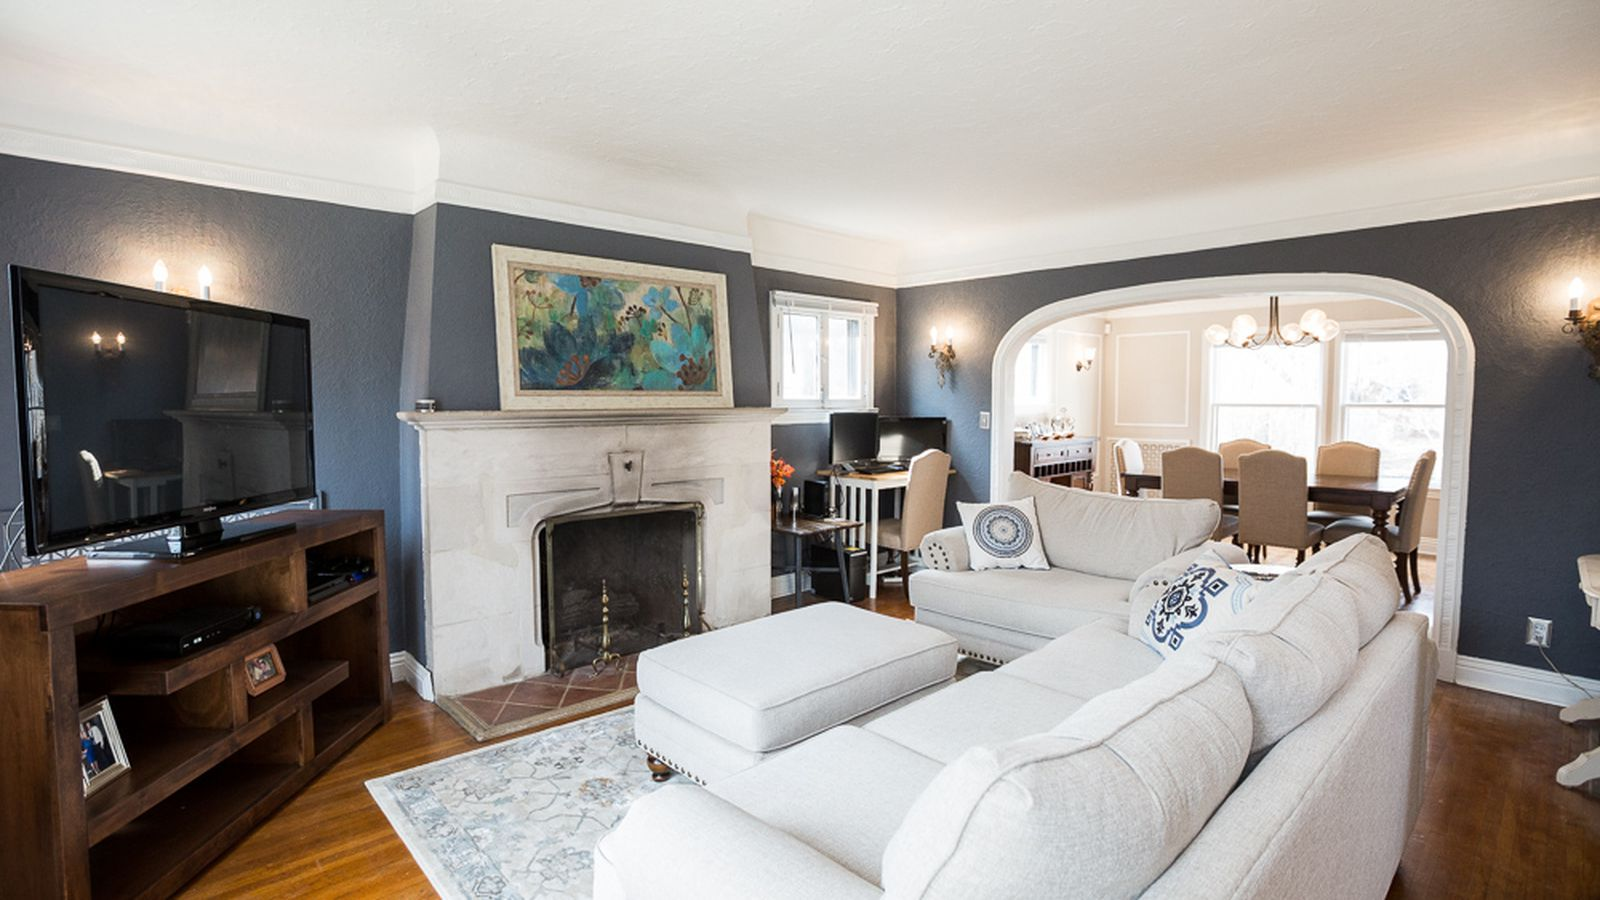 move in ready east english village home seeks 150k